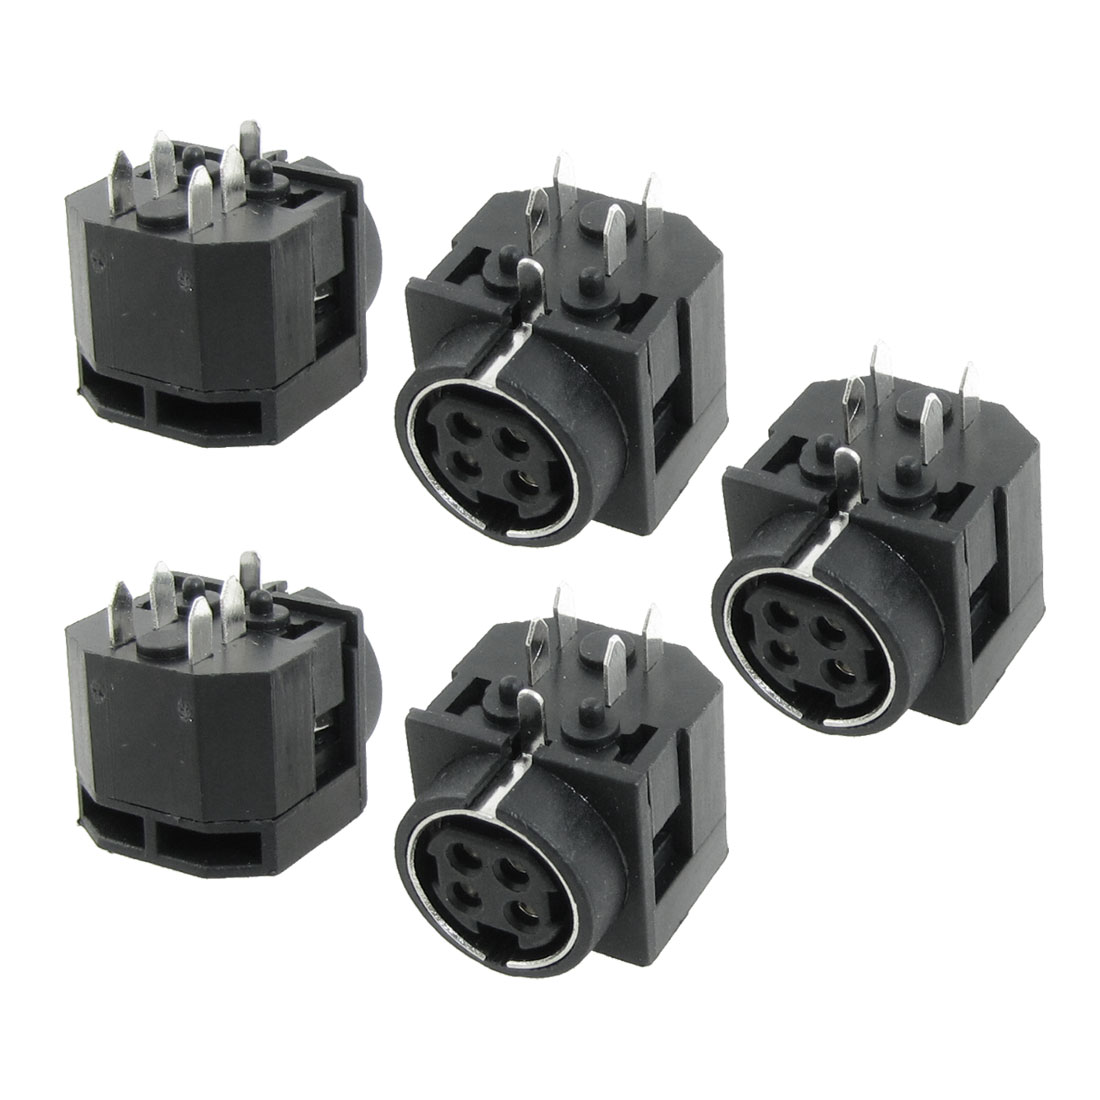 5 Pcs DC Female 4 Pin Mini DIN Power Jacks Sockets Yeptg